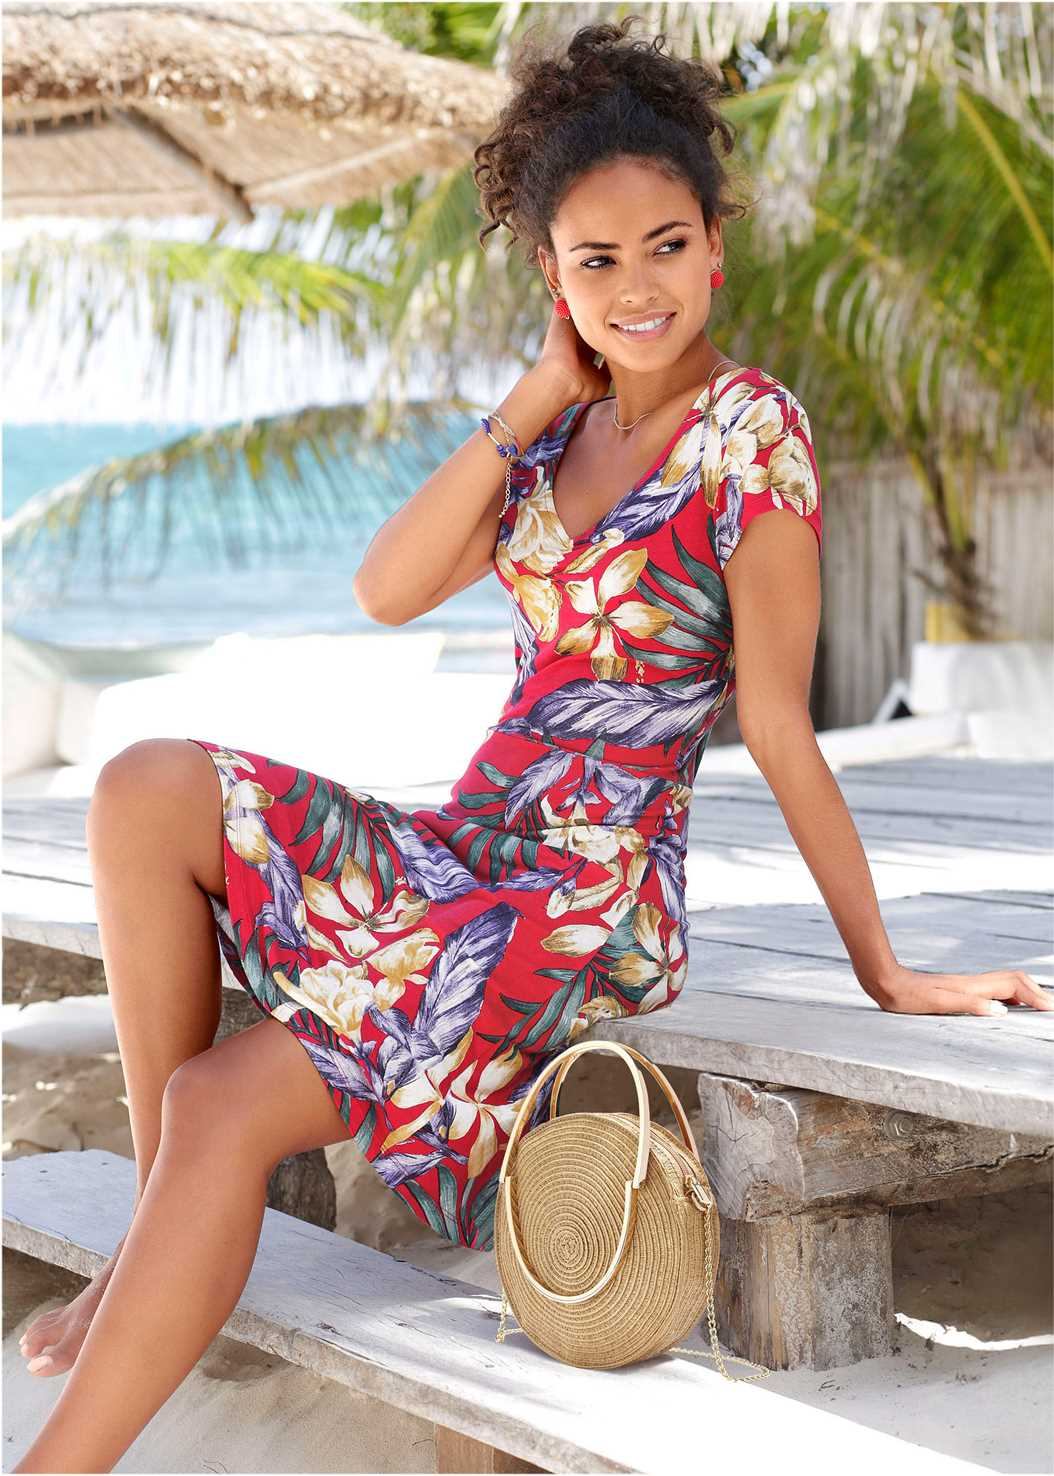 Floral A-Line Midi Dress,Lace Up Gladiator Sandals,Ring Handle Straw Tote